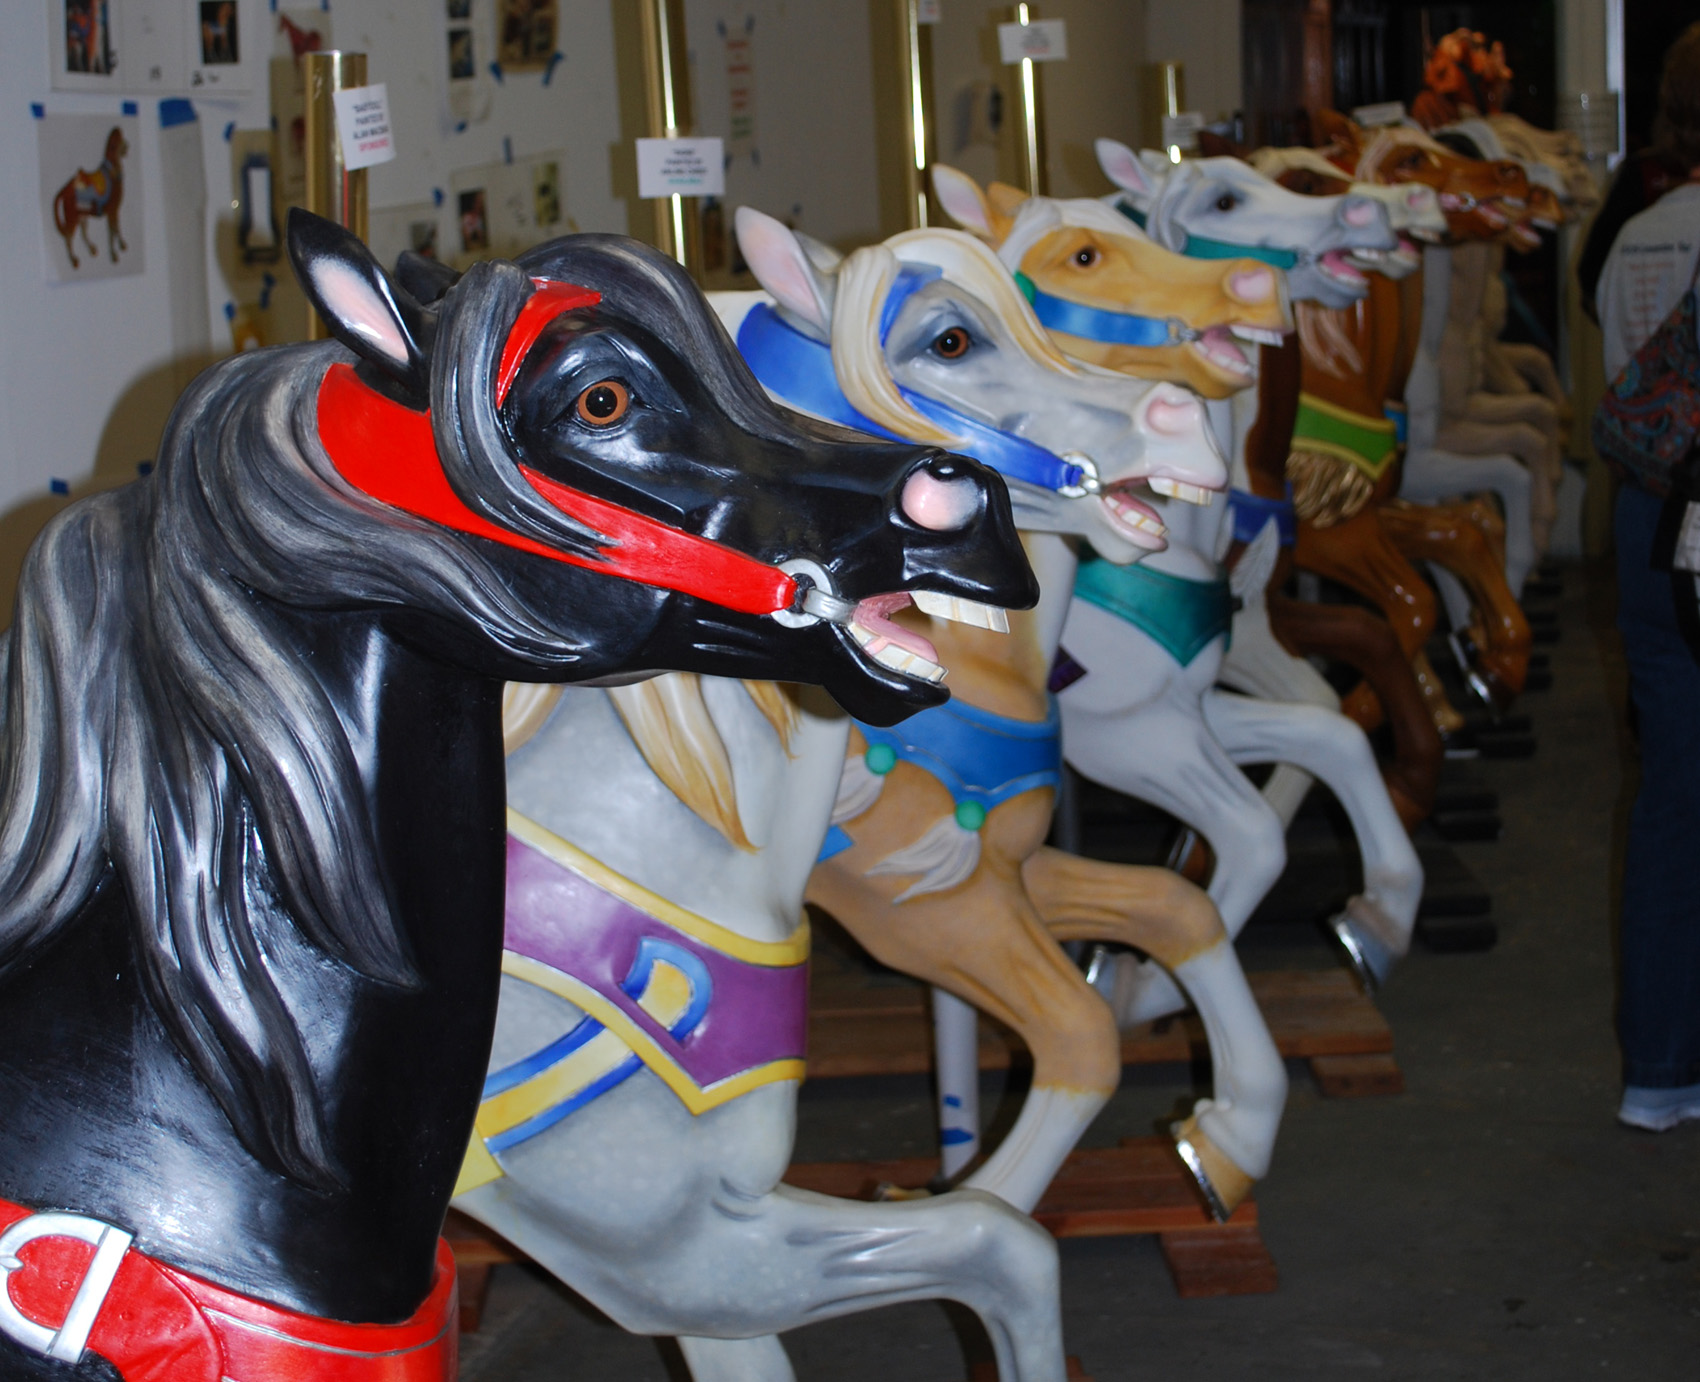 Pottstown-PA-carousel-jumpers-row-ca-2010-Ed-Roth